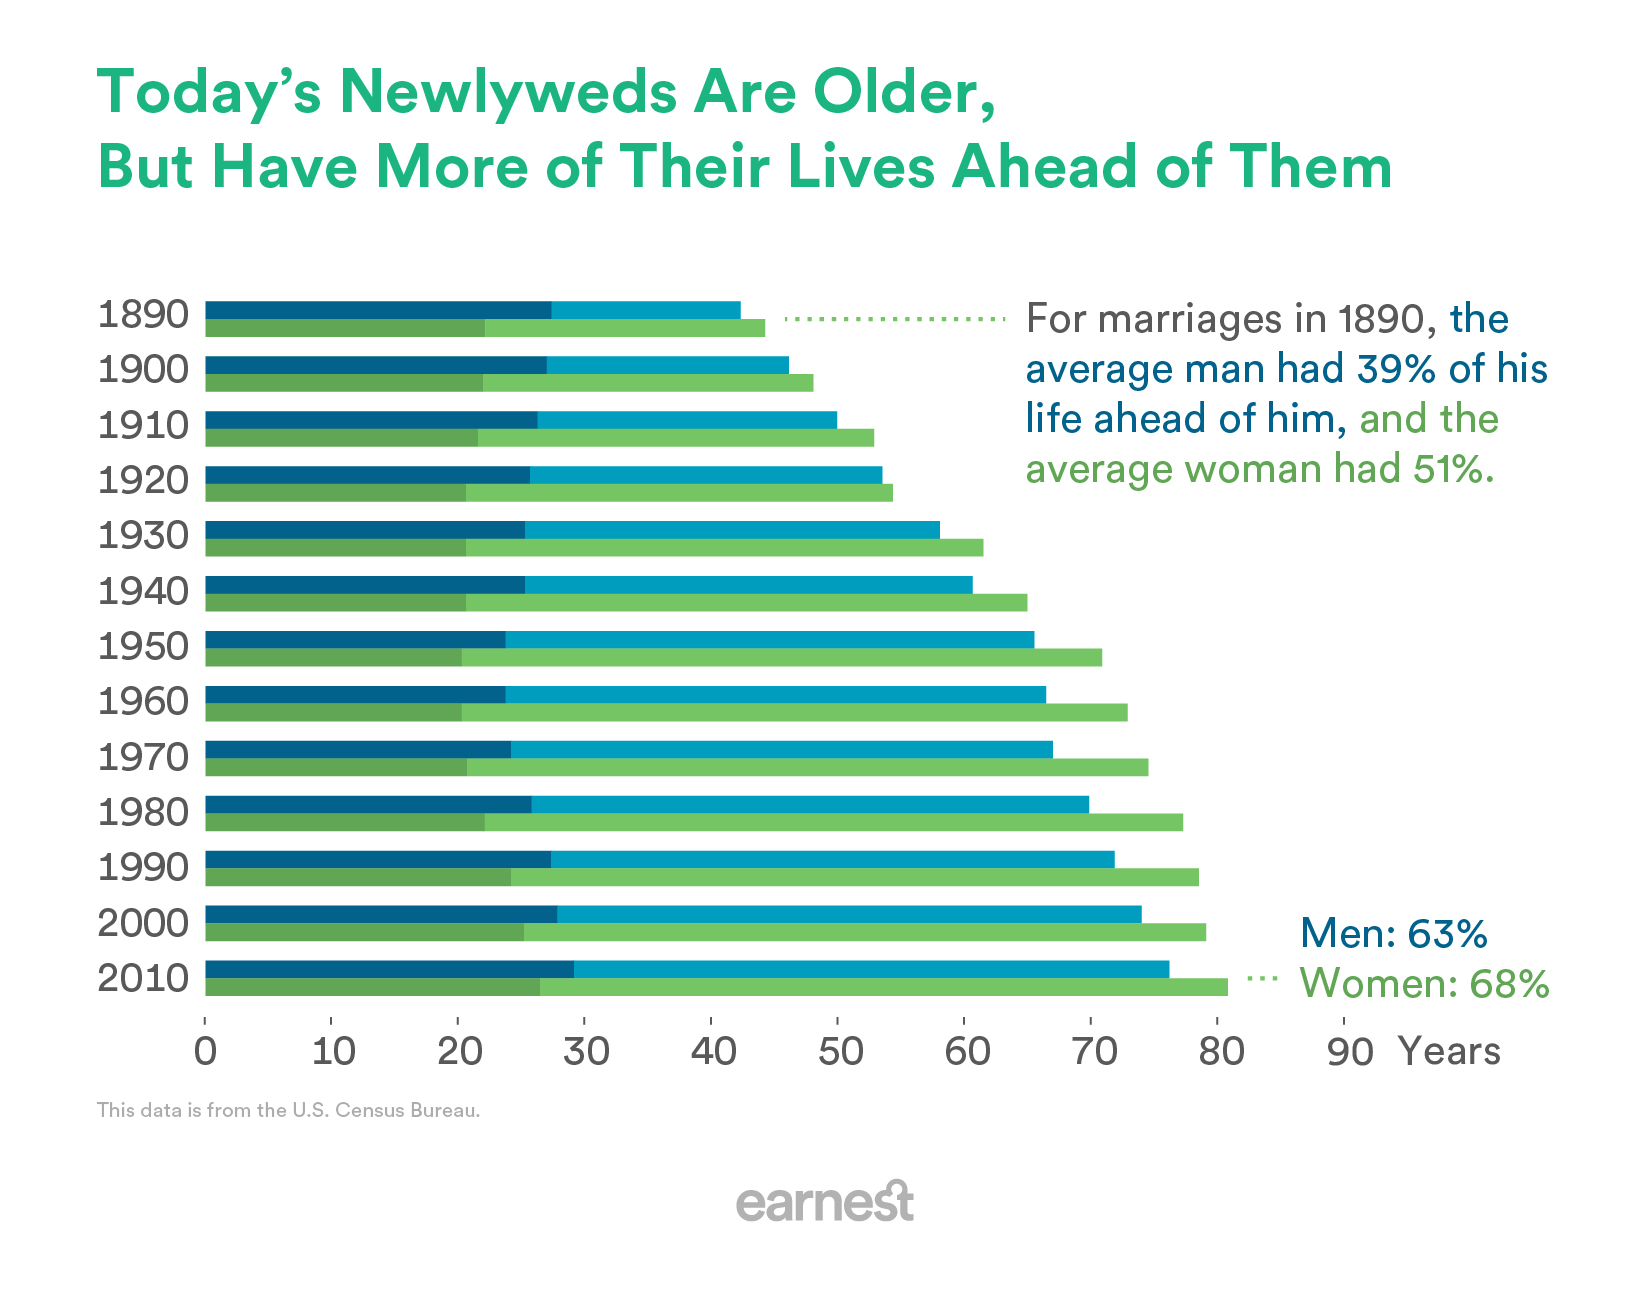 Bar chart showing 1890 to 2010. Both men and women are now getting married at an older age, but because of increasing lifespans have a greater percentage of their lives ahead of them at marriage.